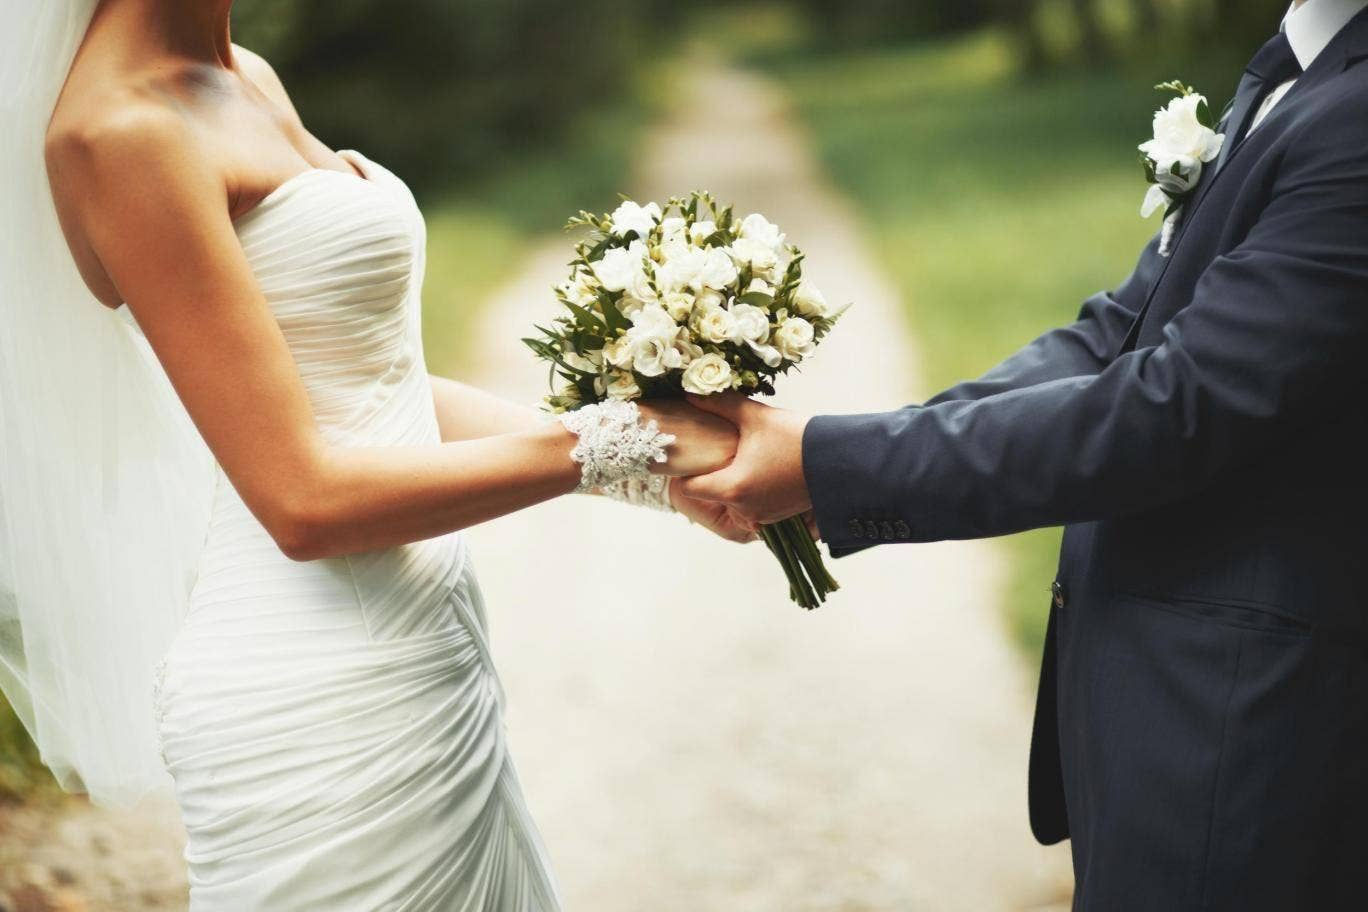 Marriages between men and women hit lowest rate on record the marriages between men and women hit lowest rate on record the independent izmirmasajfo